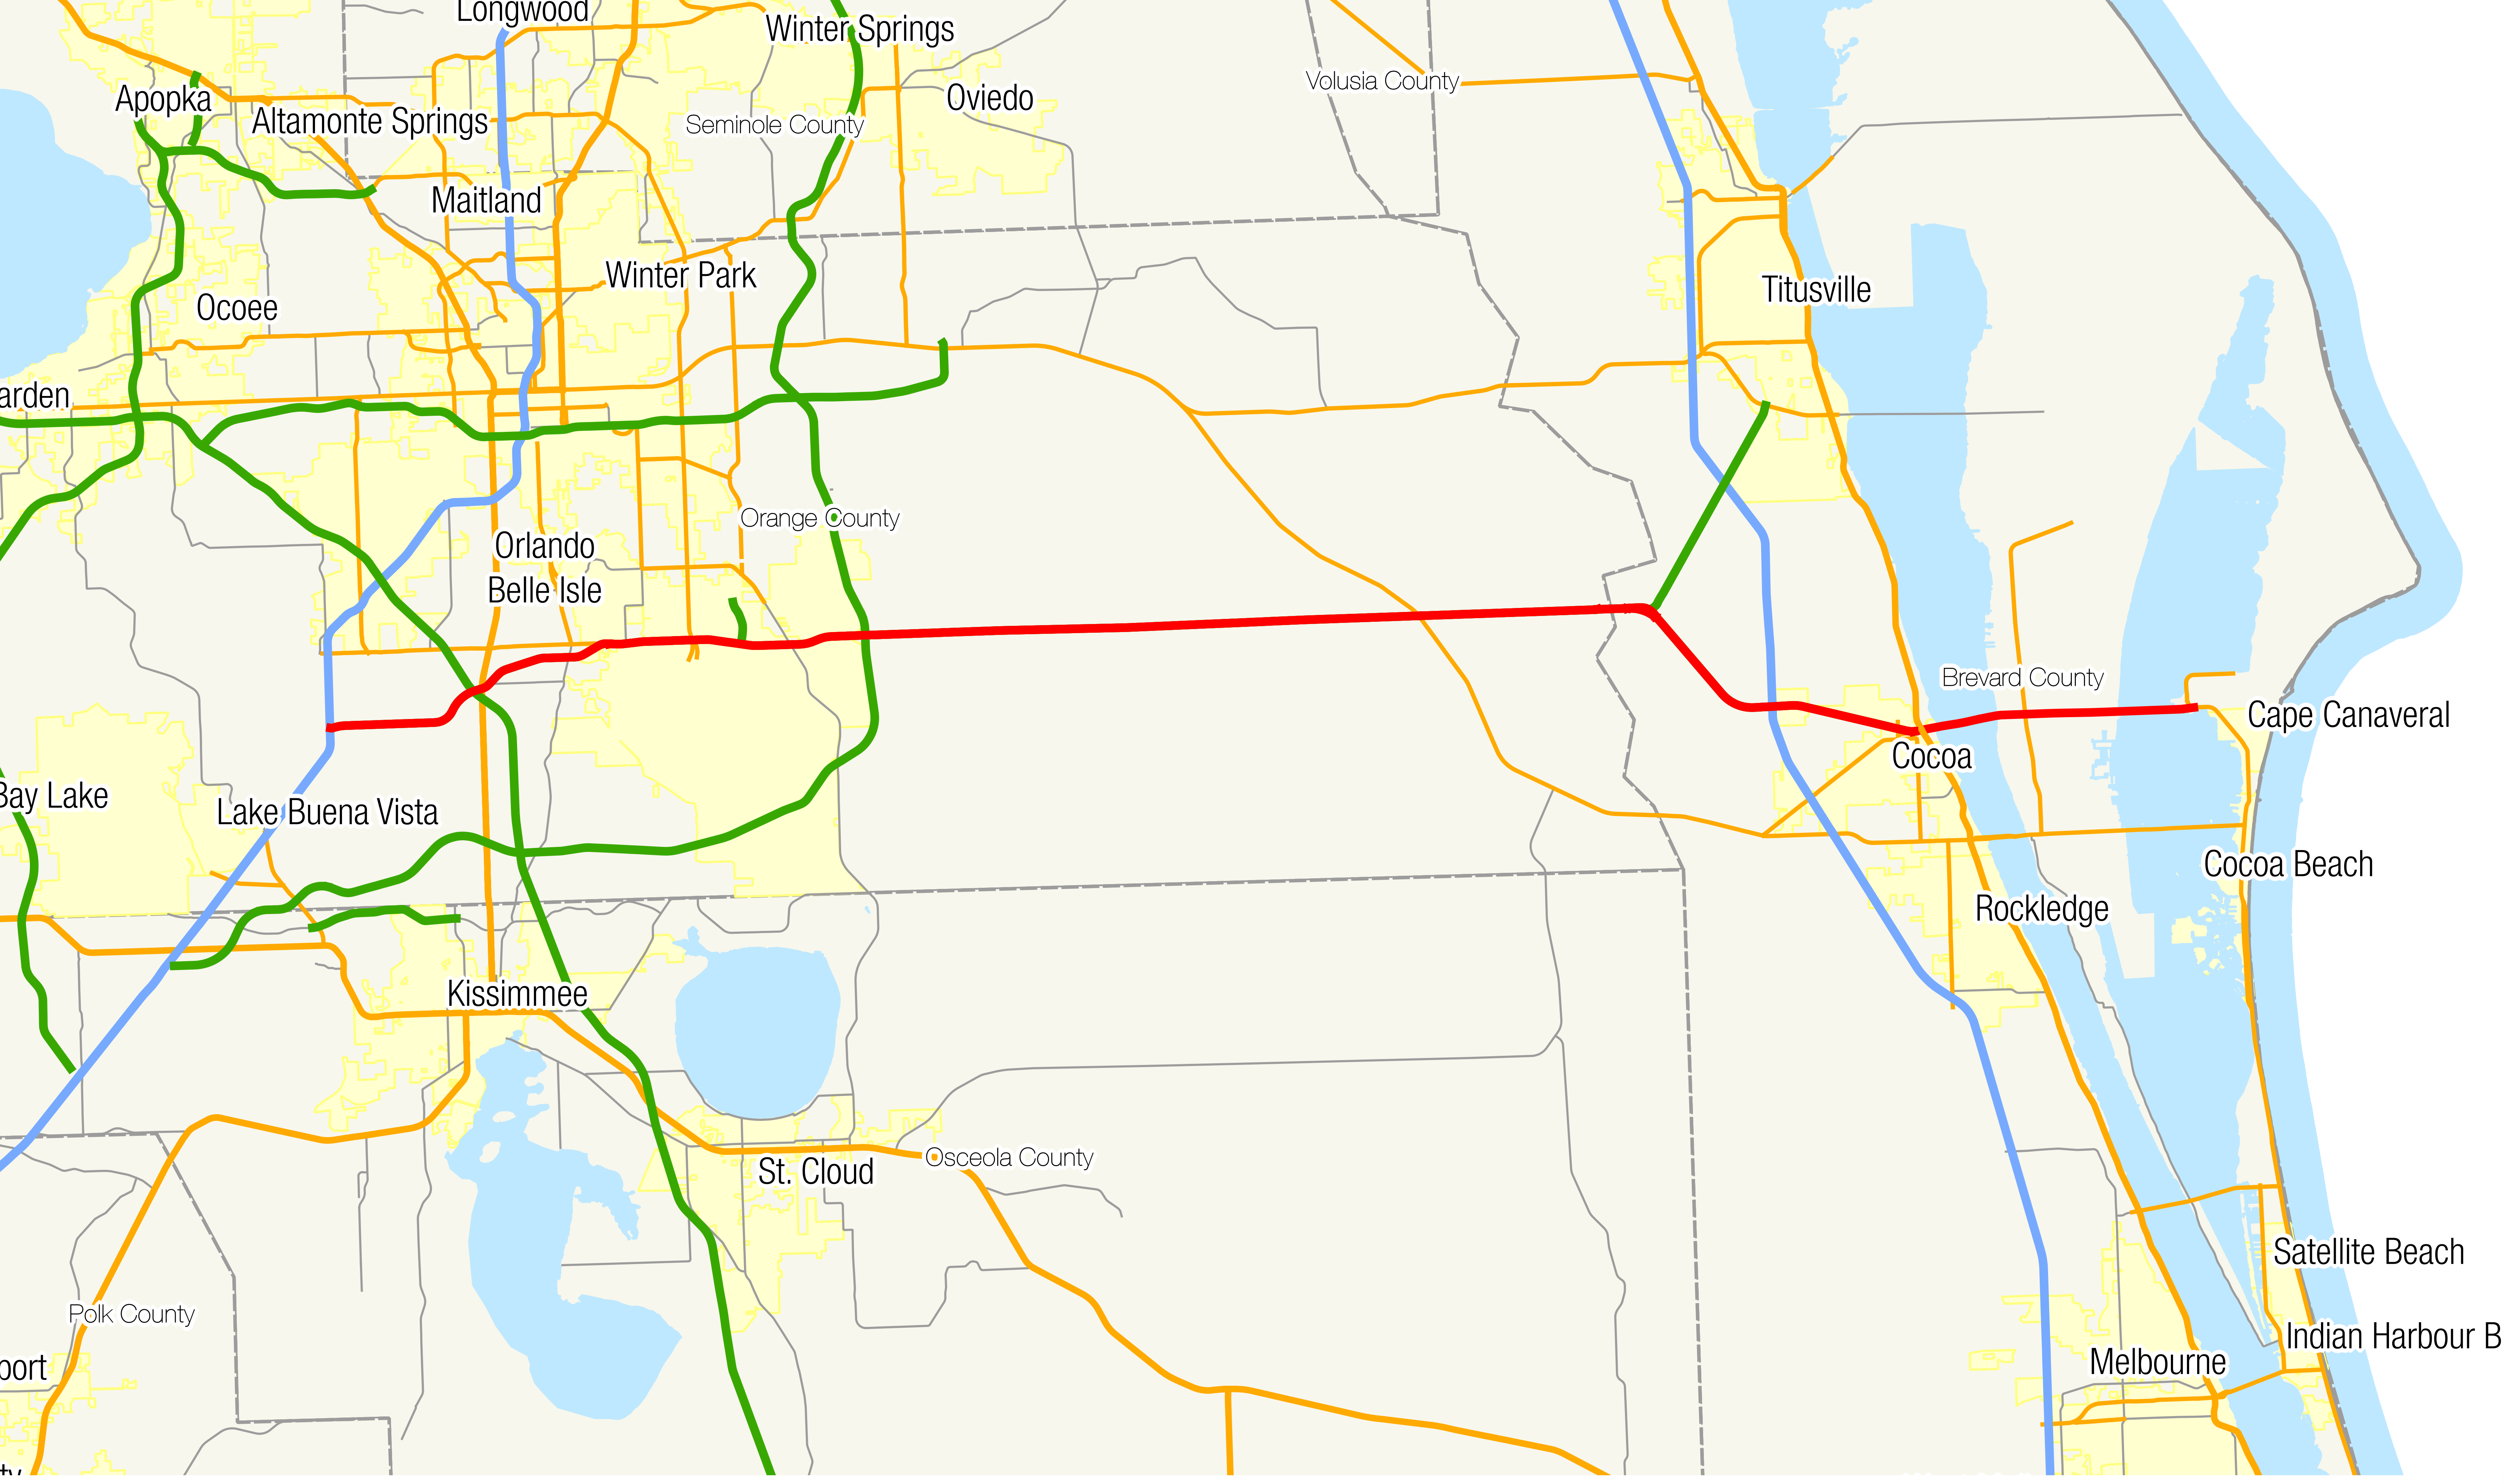 Florida State Map With Highways.Florida State Road 528 Wikipedia